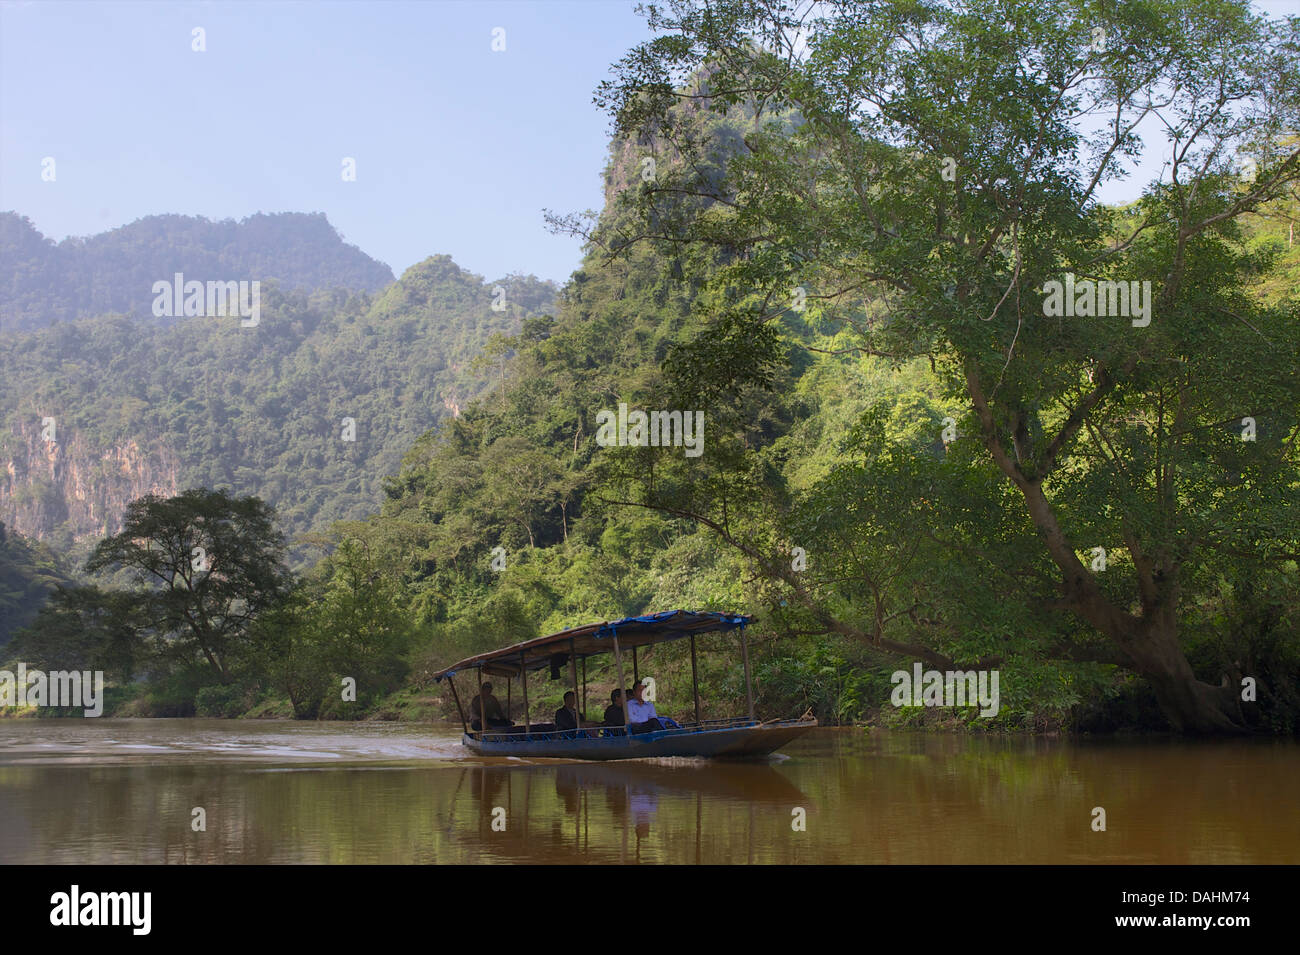 River boat on Ba Be lake,  the largest natural lake in Vietnam. Bac Kan district, Bac Kan Province. Northeast Vietnam - Stock Image